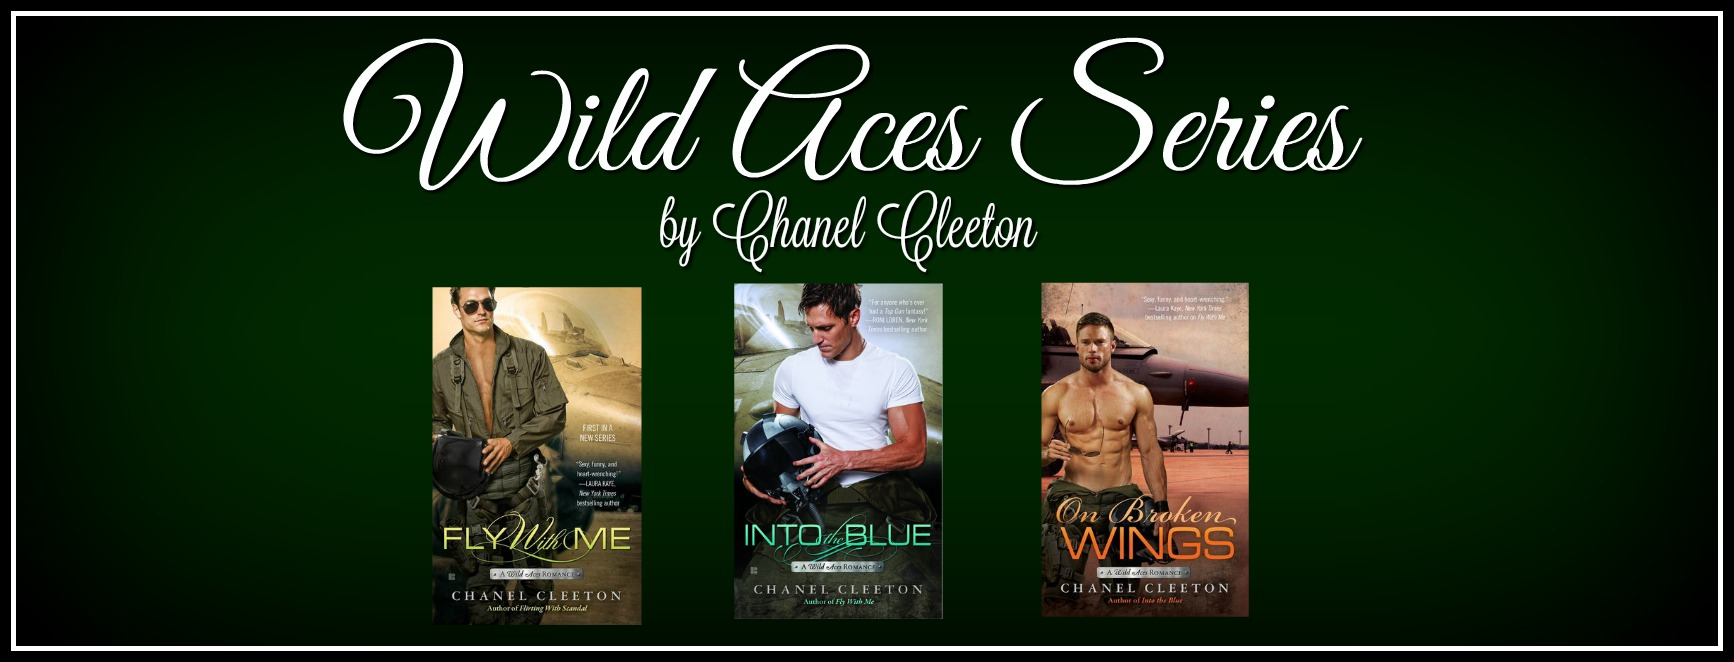 BOOK CRUSH & GIVEAWAY!! Wild Aces Series by Chanel Cleeton!